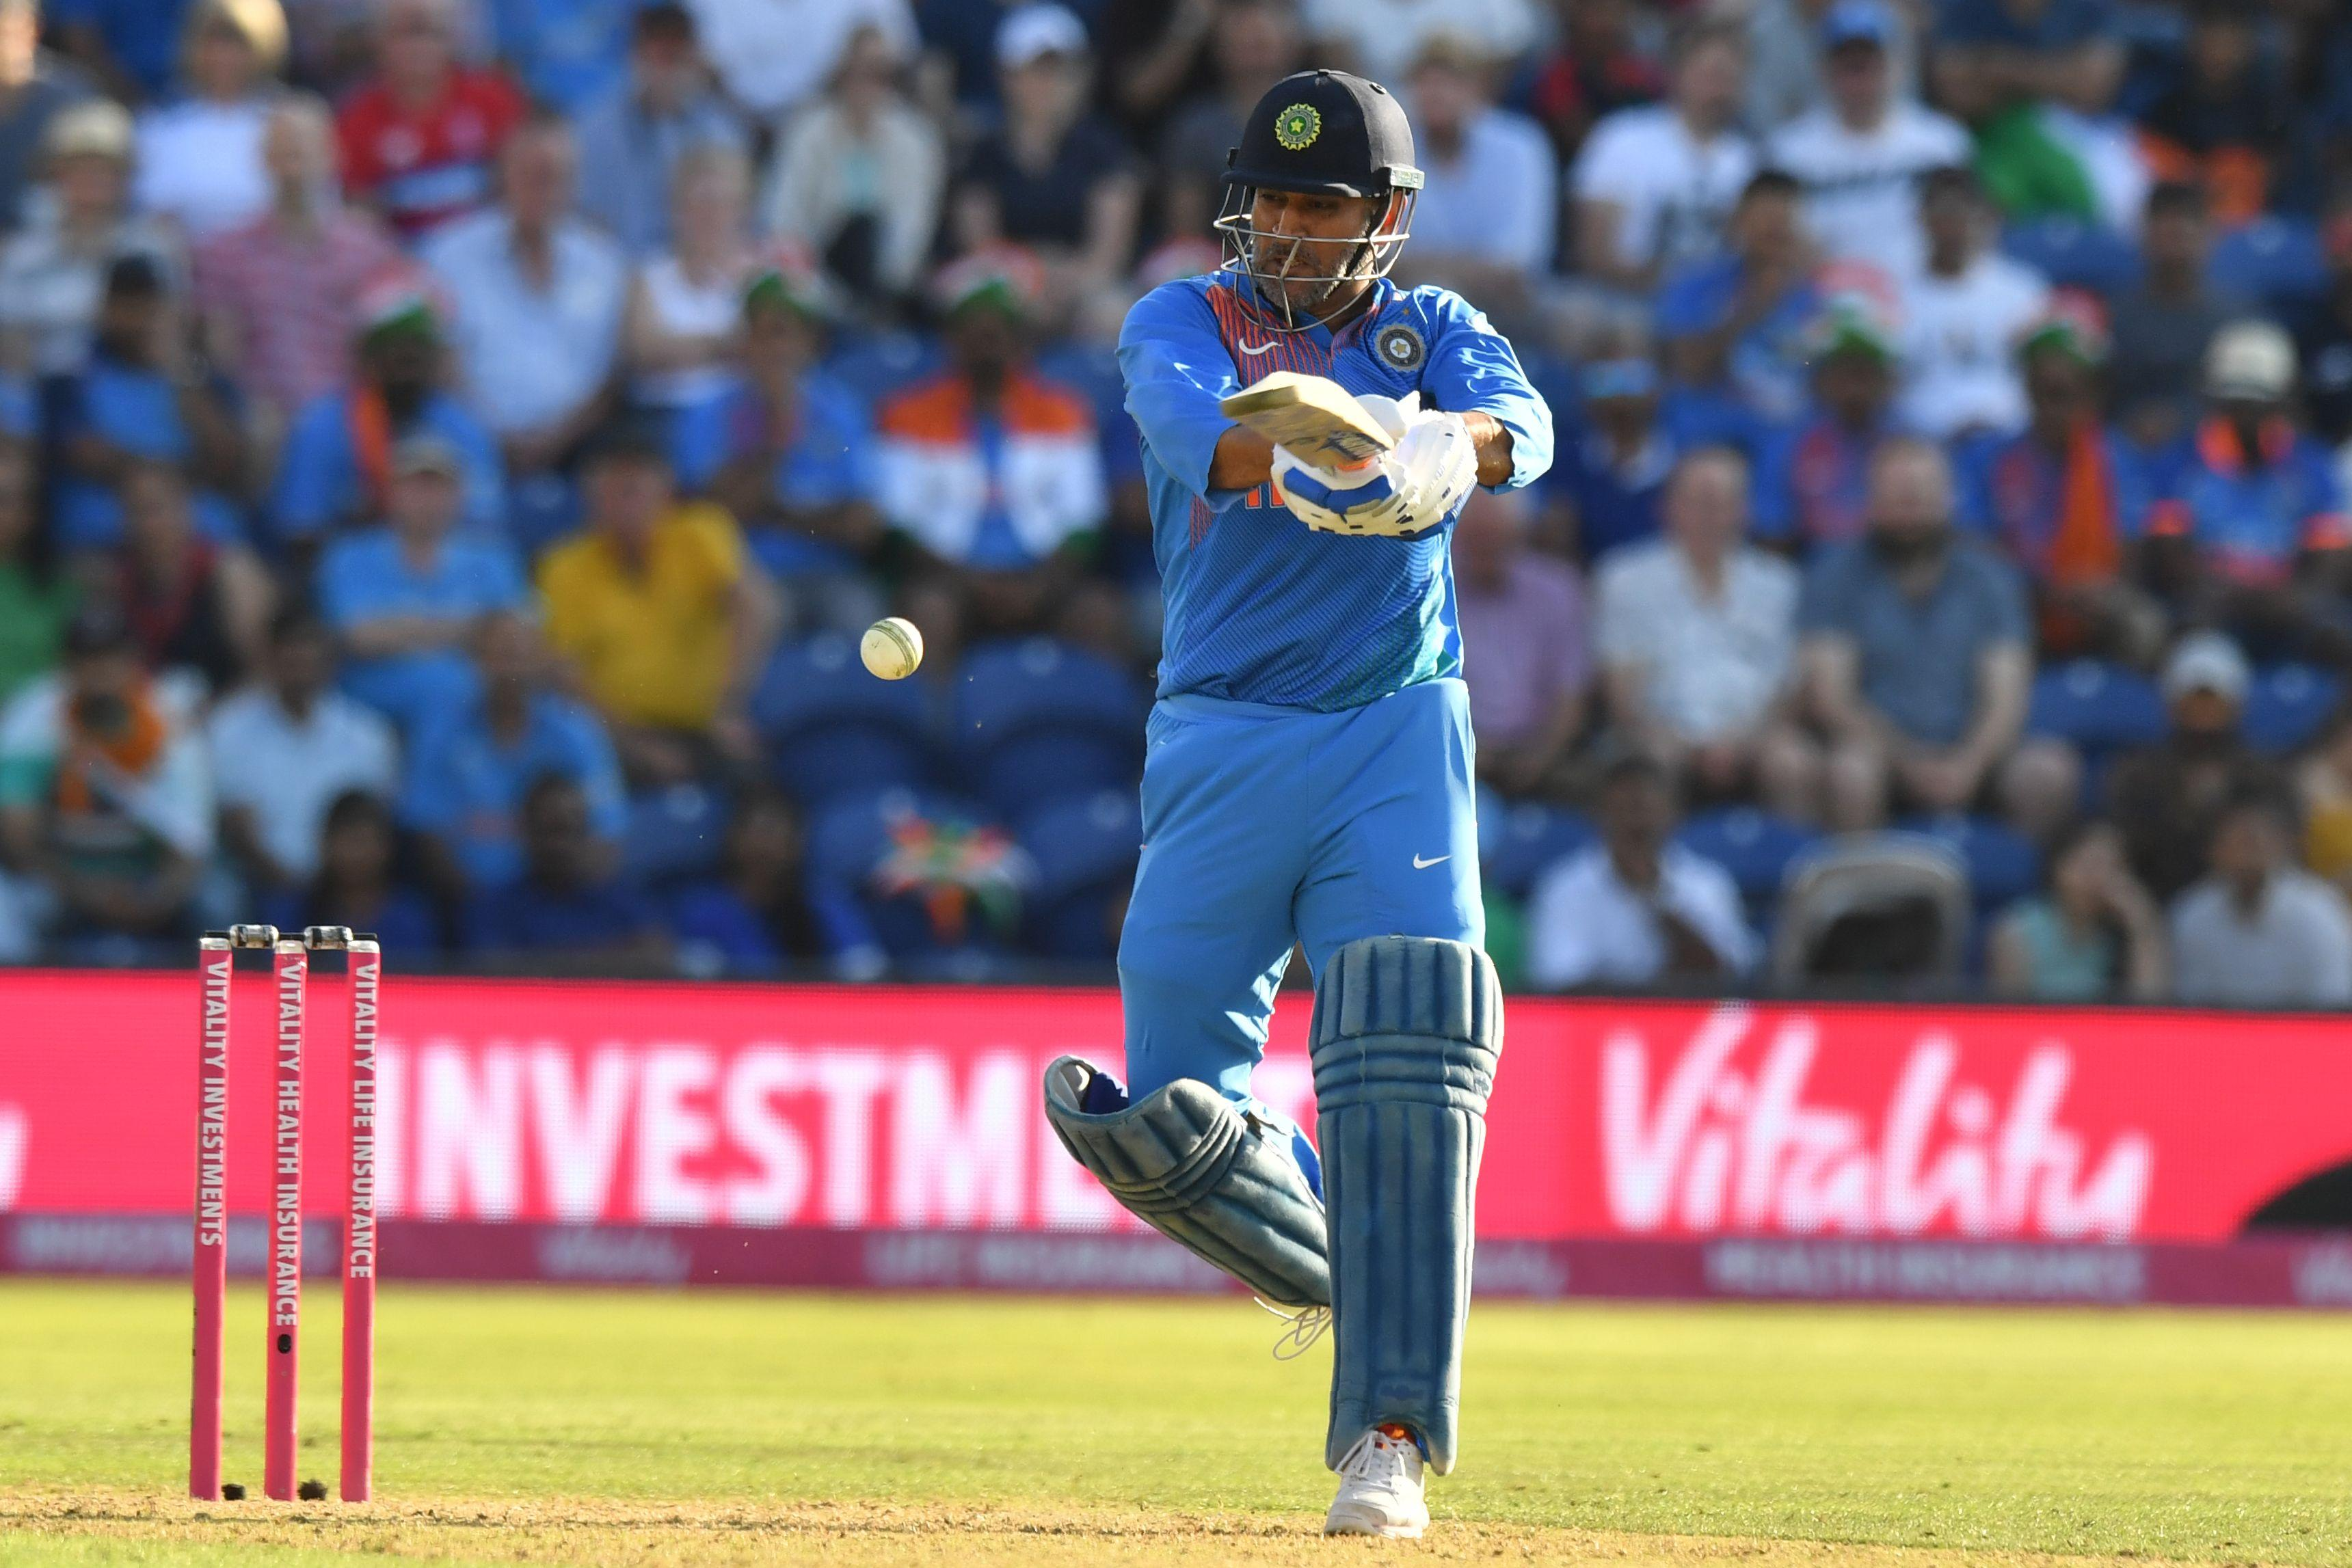 MS Dhoni powered India up to 148 with his late cameo